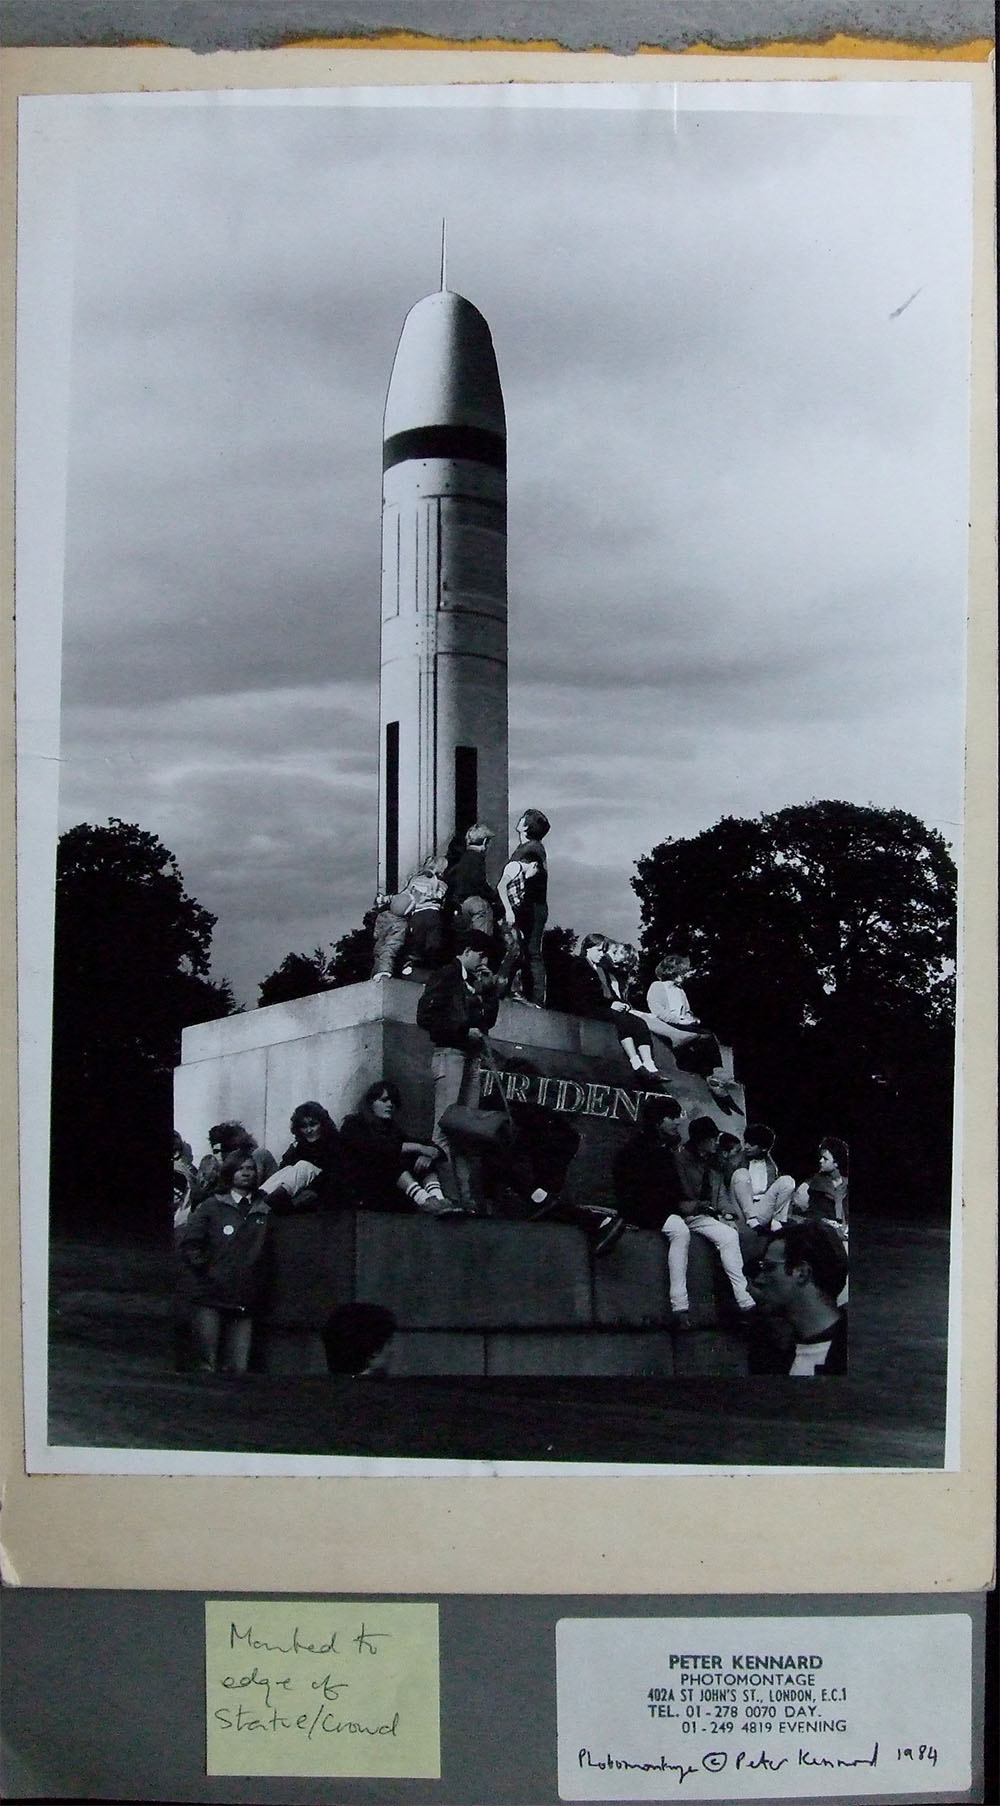 Trident, A Monument to Waste - PhotomontageGelatin silver prints andink on card1986First published: About Turn,Pluto Press, 1986Catalogue: PK/16